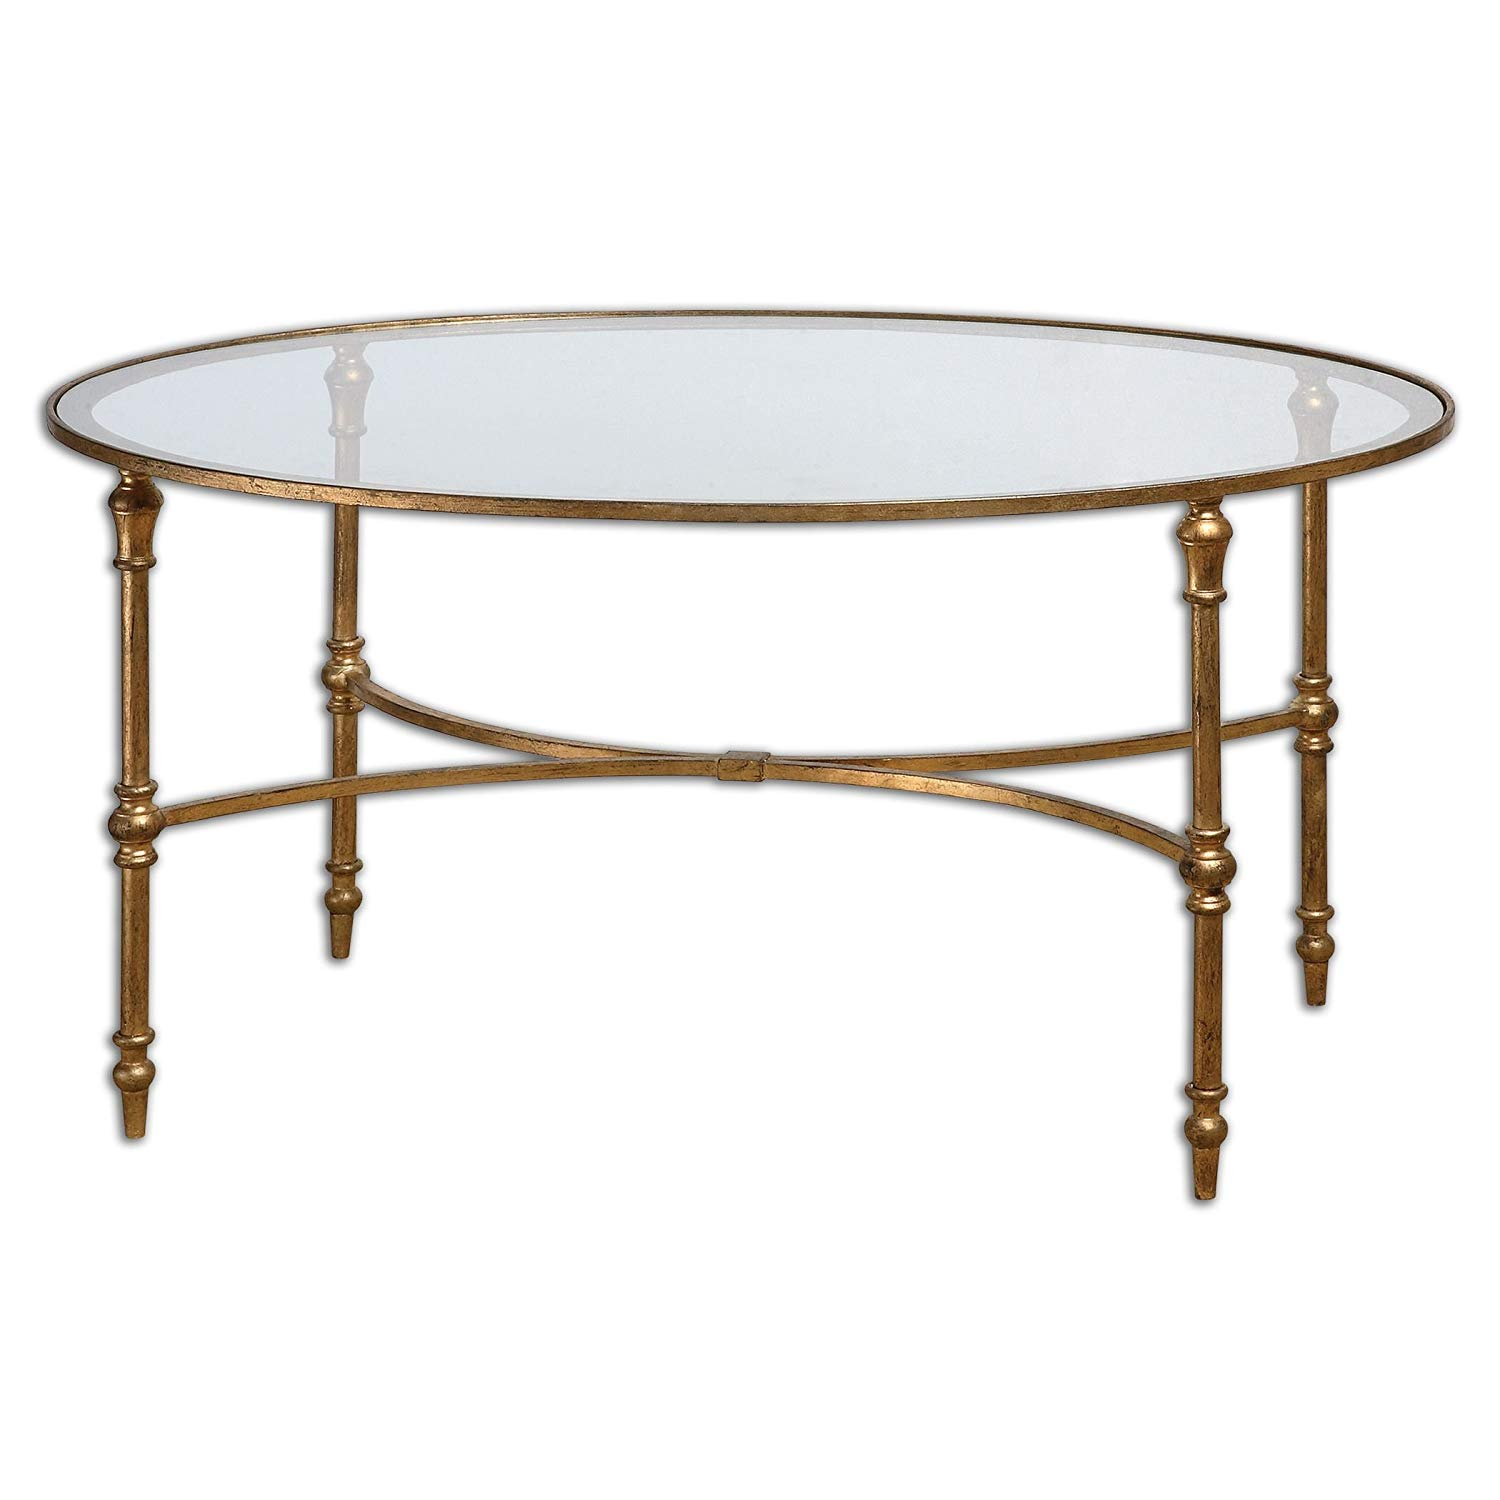 elegant oval gold iron coffee table kitchen dining end real wood tables hooker round pedestal antique glass and nest under red nesting for two riverside plumbs furniture clearance